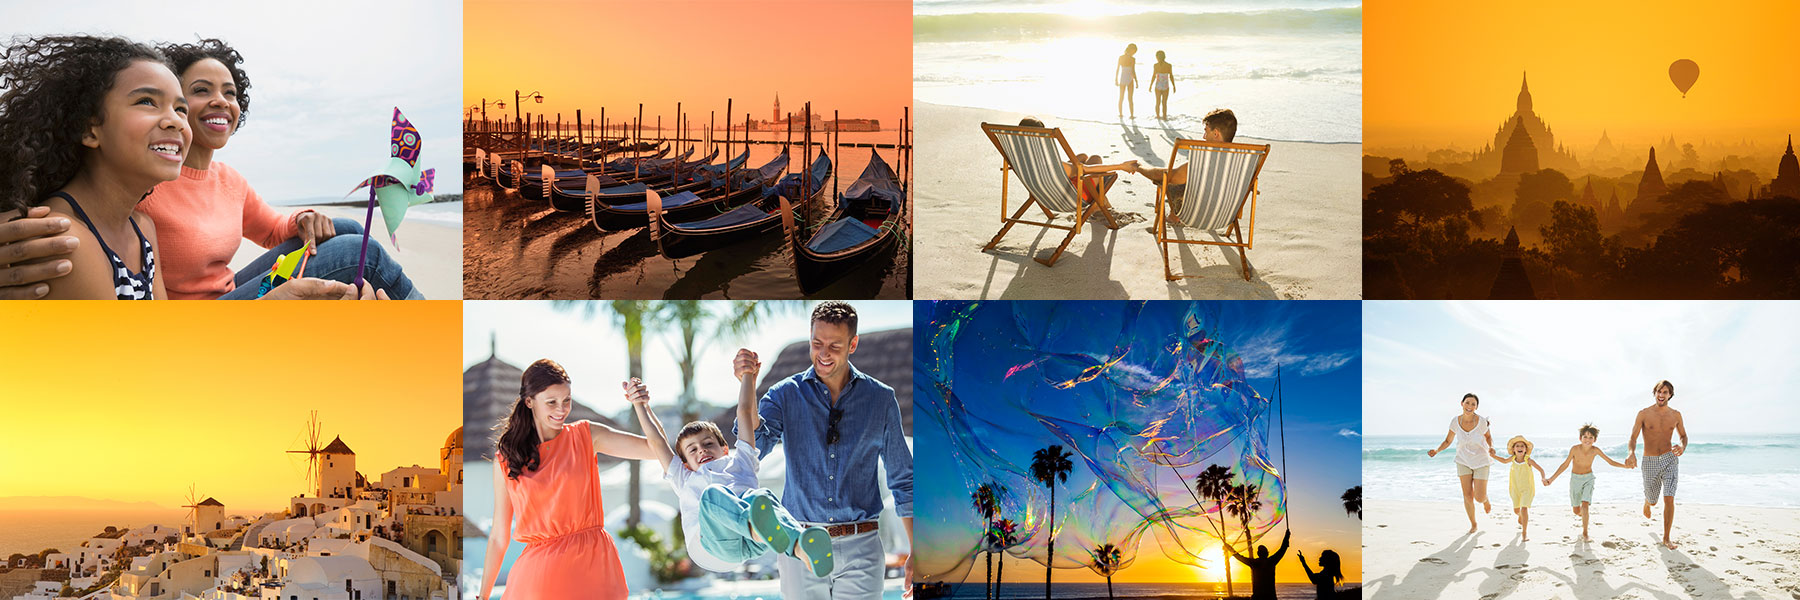 TierOne Travel - Book your travel now